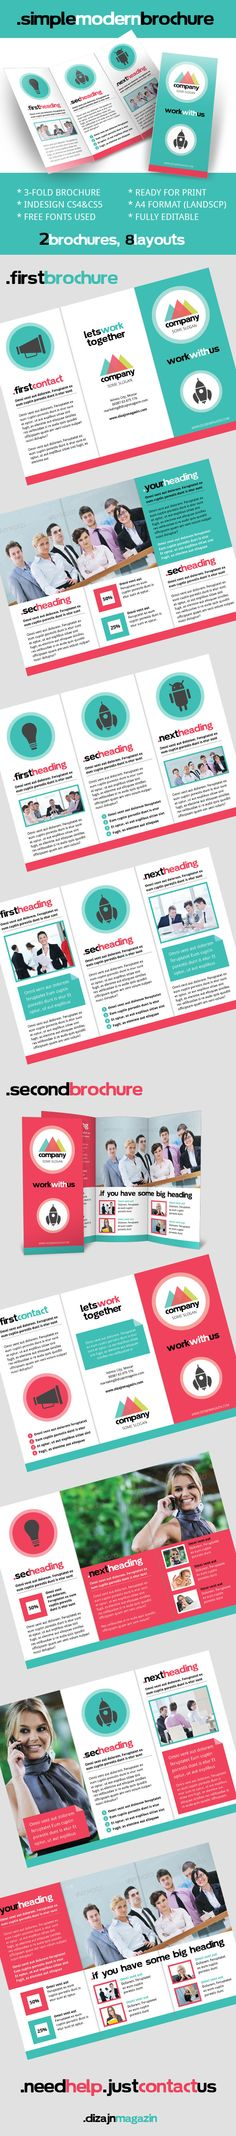 Simple Modern Brochure InDesign Template for Free by Josip Vrbic, via Behance